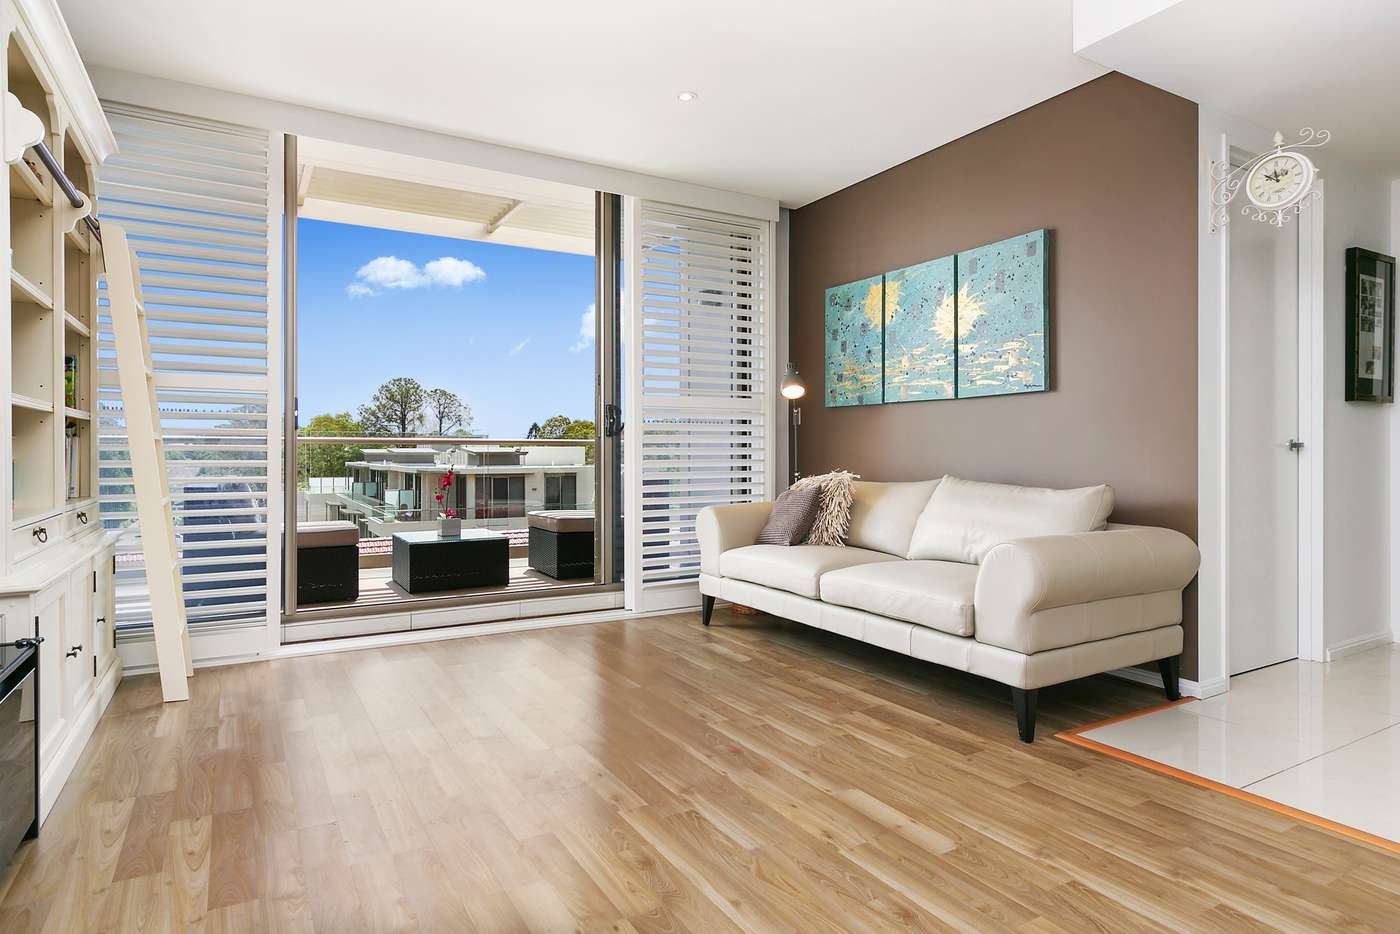 Main view of Homely apartment listing, 435/132 - 138 Killeaton Street, St Ives NSW 2075